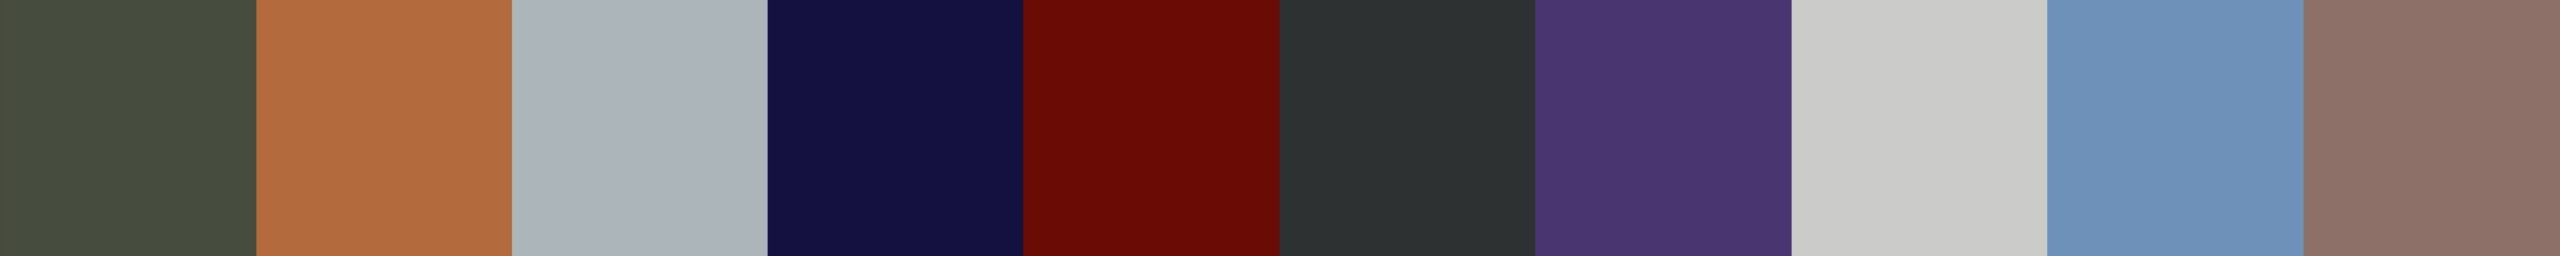 548 Atalante Color Palette